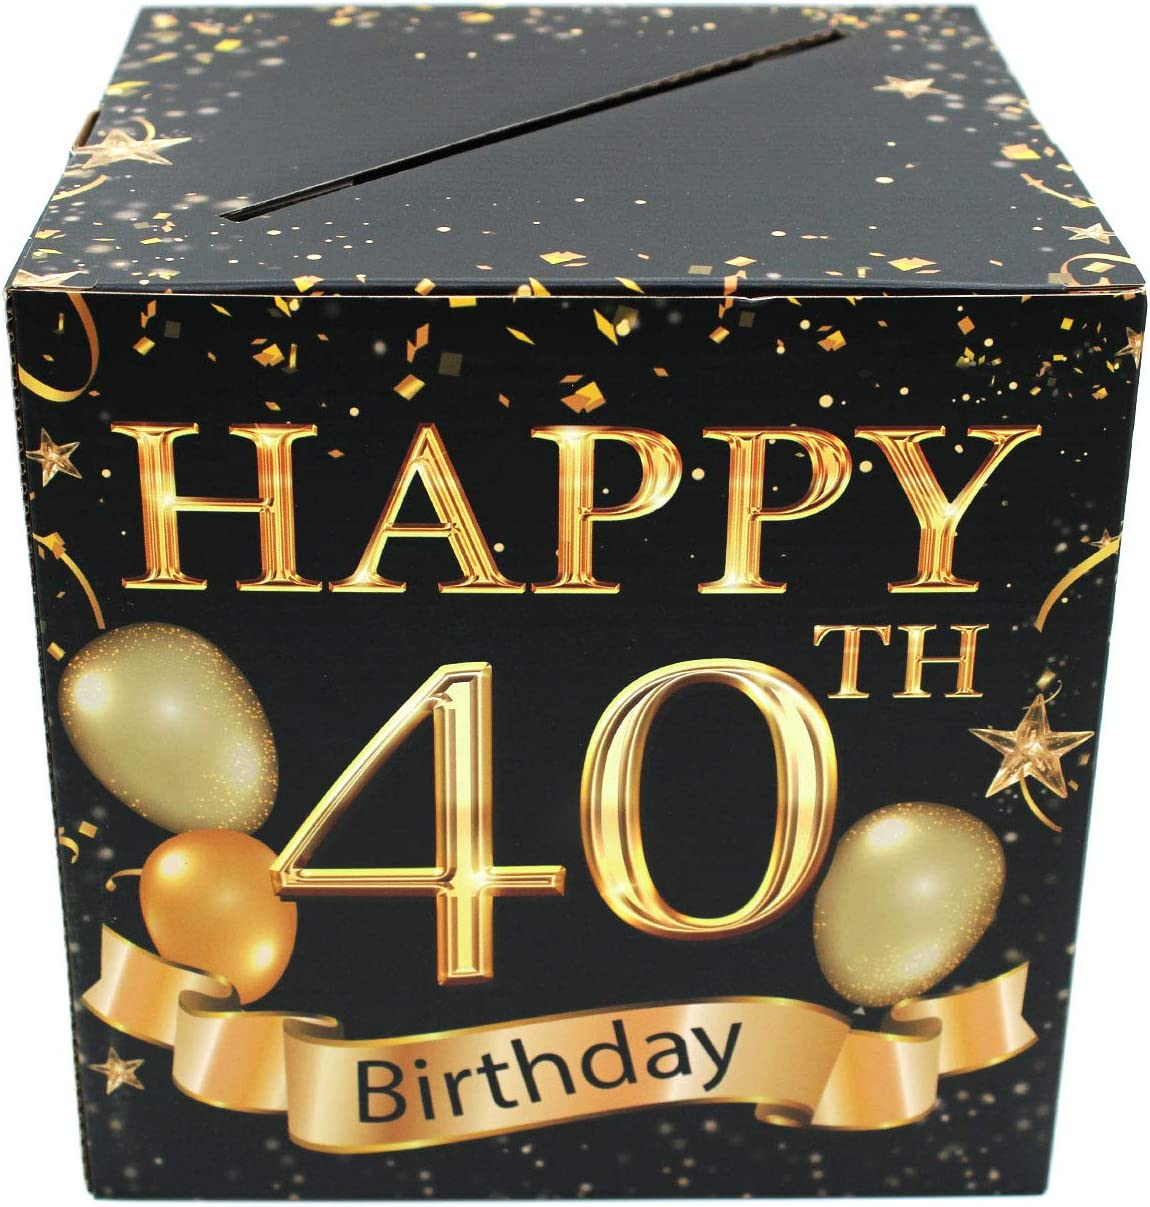 Buildinest 40th Birthday Party Decorations Box – Cheers to 40 Years, 40 Birthday Party Supplies – 1 Set(Box-40-BLK)